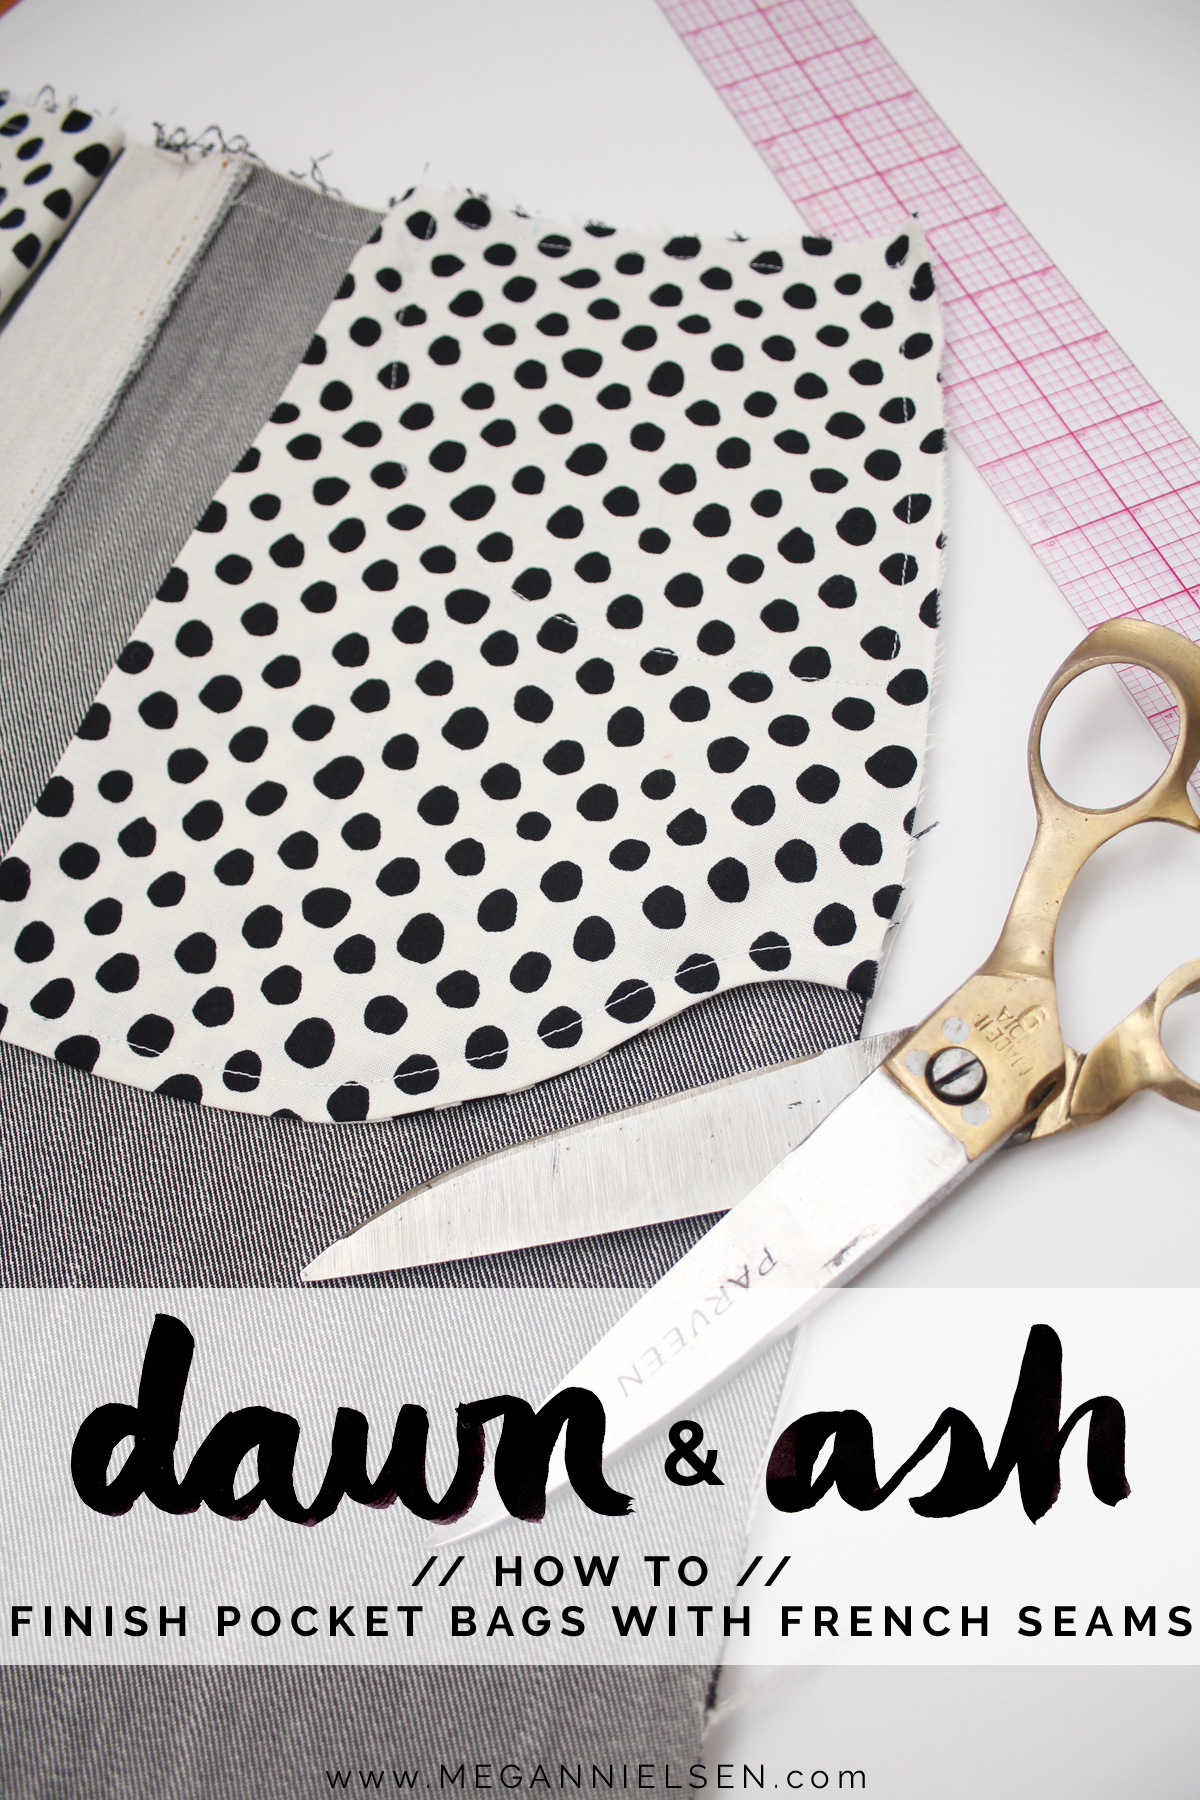 how to finish jeans pocket bags with french seams